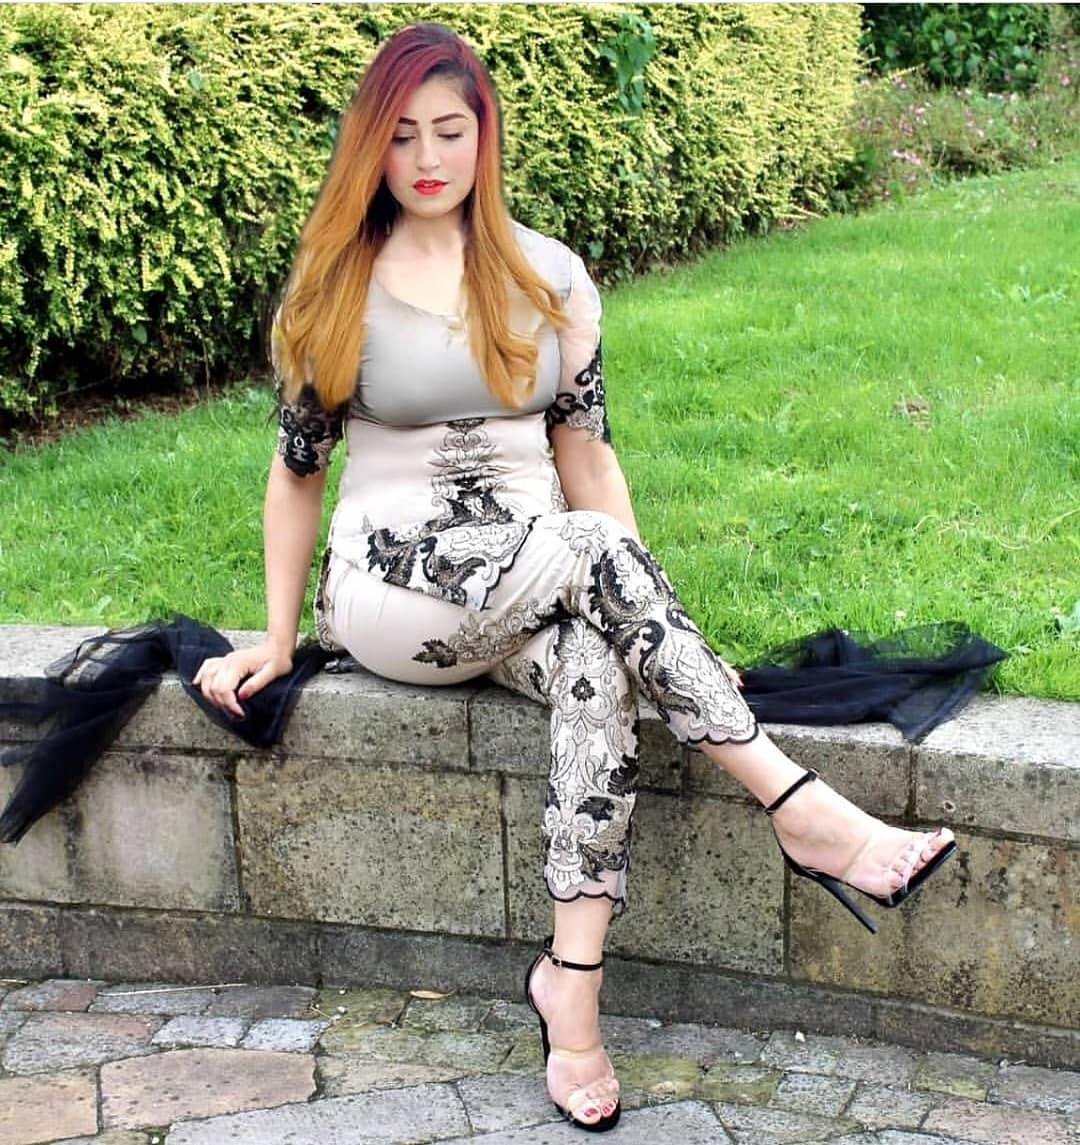 Genuine and most famous Lucknow Escorts ready to give you company - Lucknow Escorts Service by Lucknow Call Girl